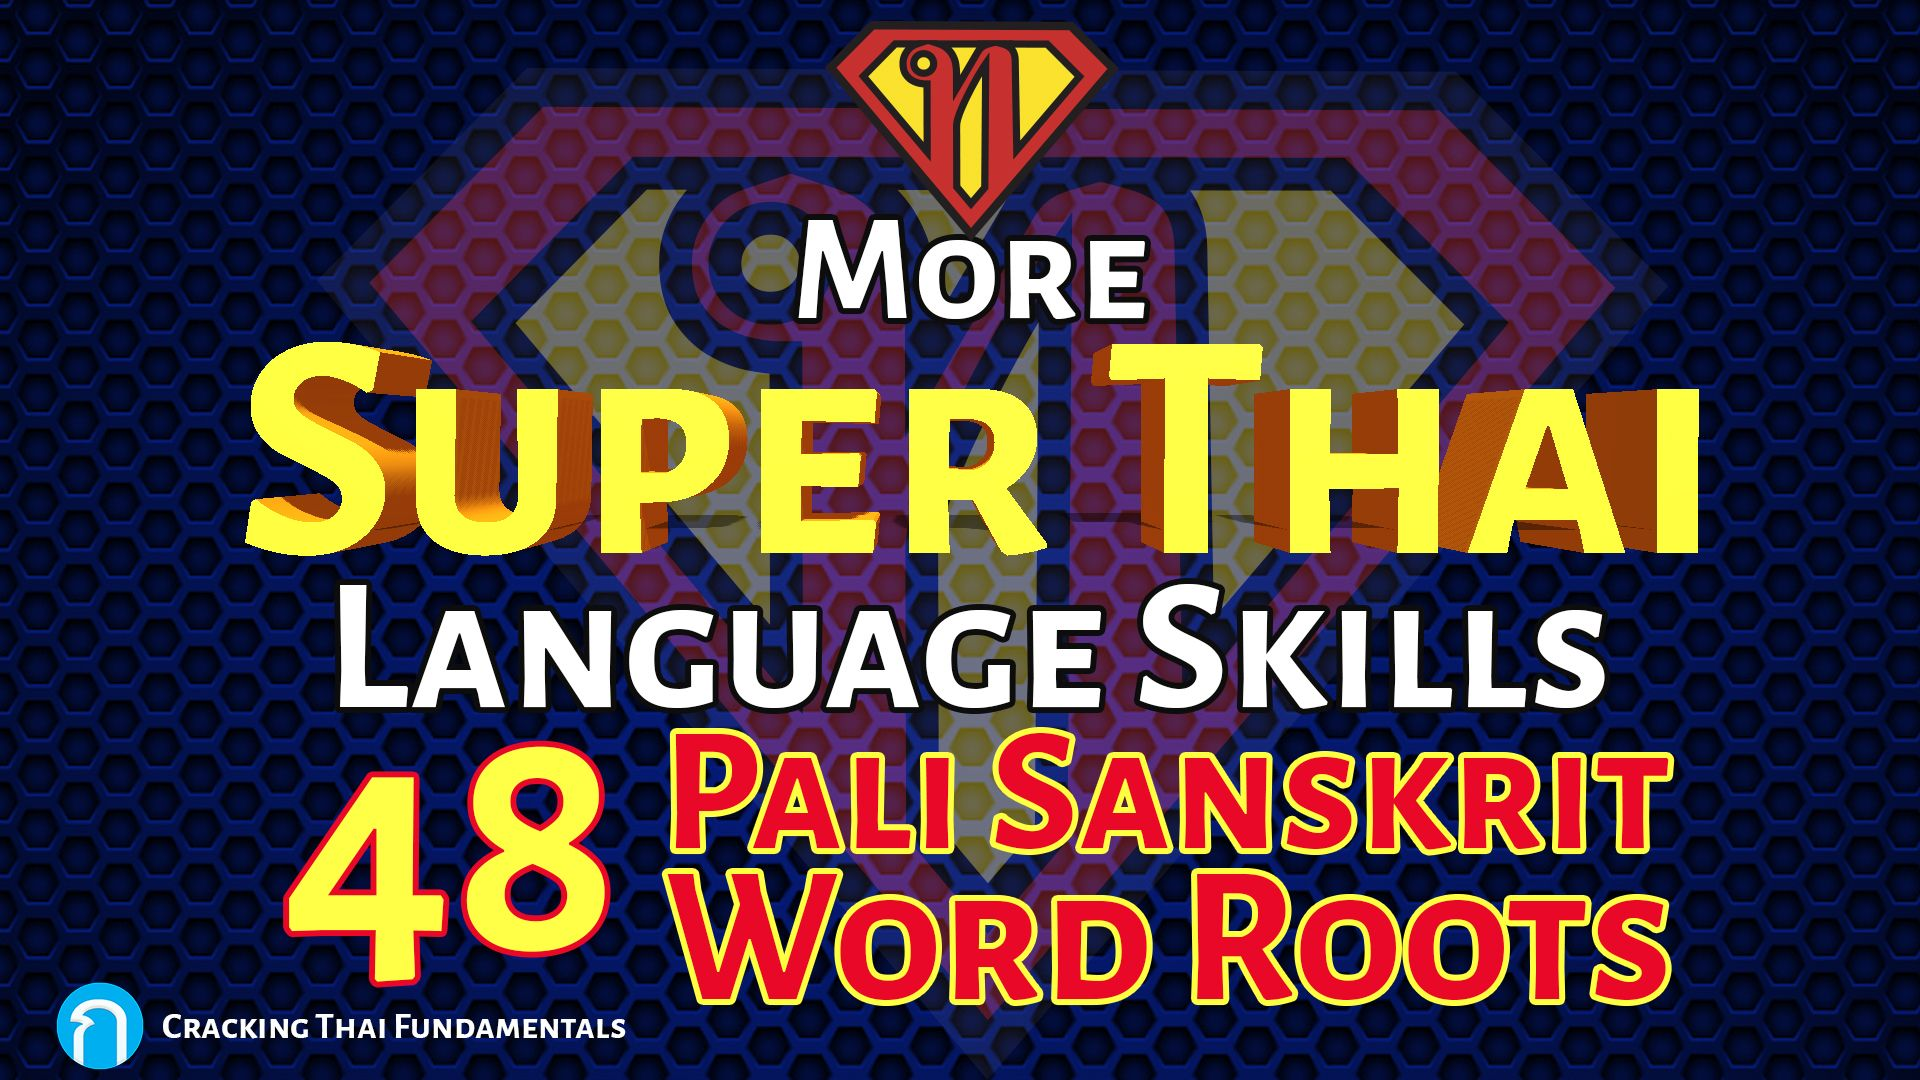 48 Pali and Sanskrit Root Words in Thai to Give you even More Thai Language Super Powers